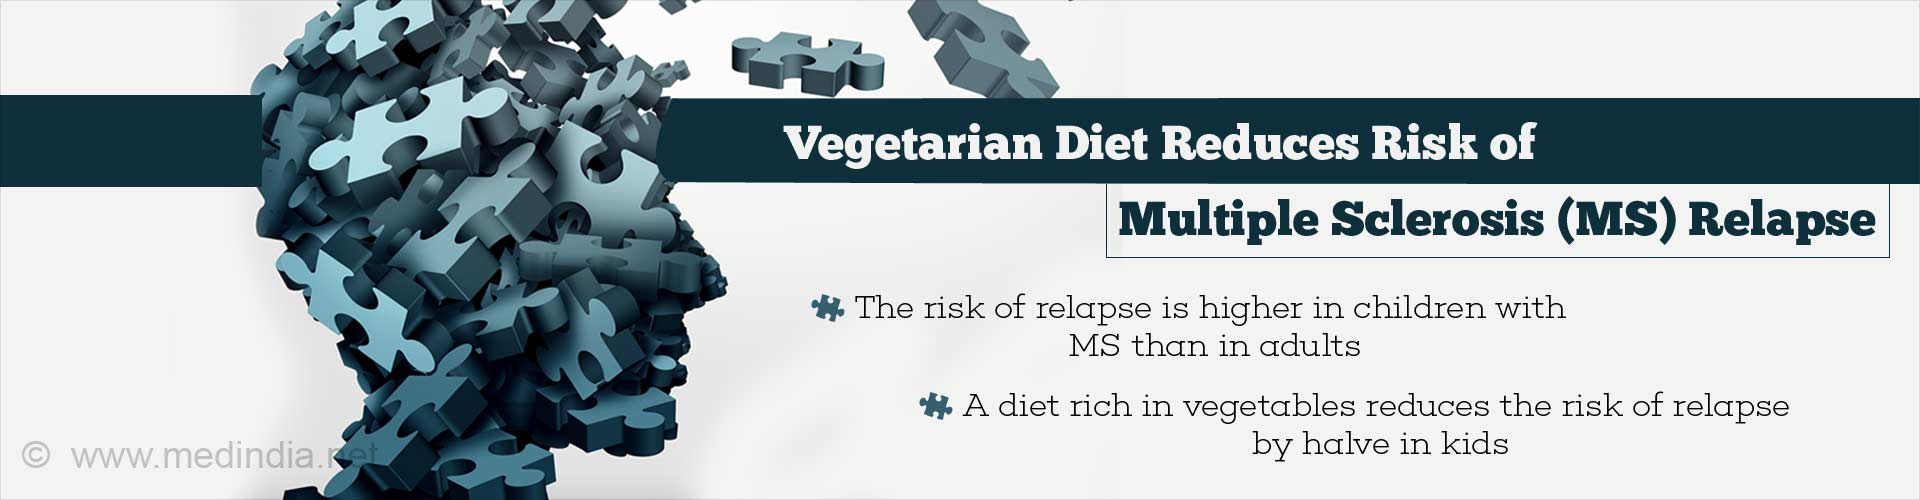 Vegetarian Diet Reduces Risk of Multiple Sclerosis (MS) Relapse - The risk of relapse is higher in children with MS than in adults - A diet rich in vegetables reduces the risk of relapse to halve in kids